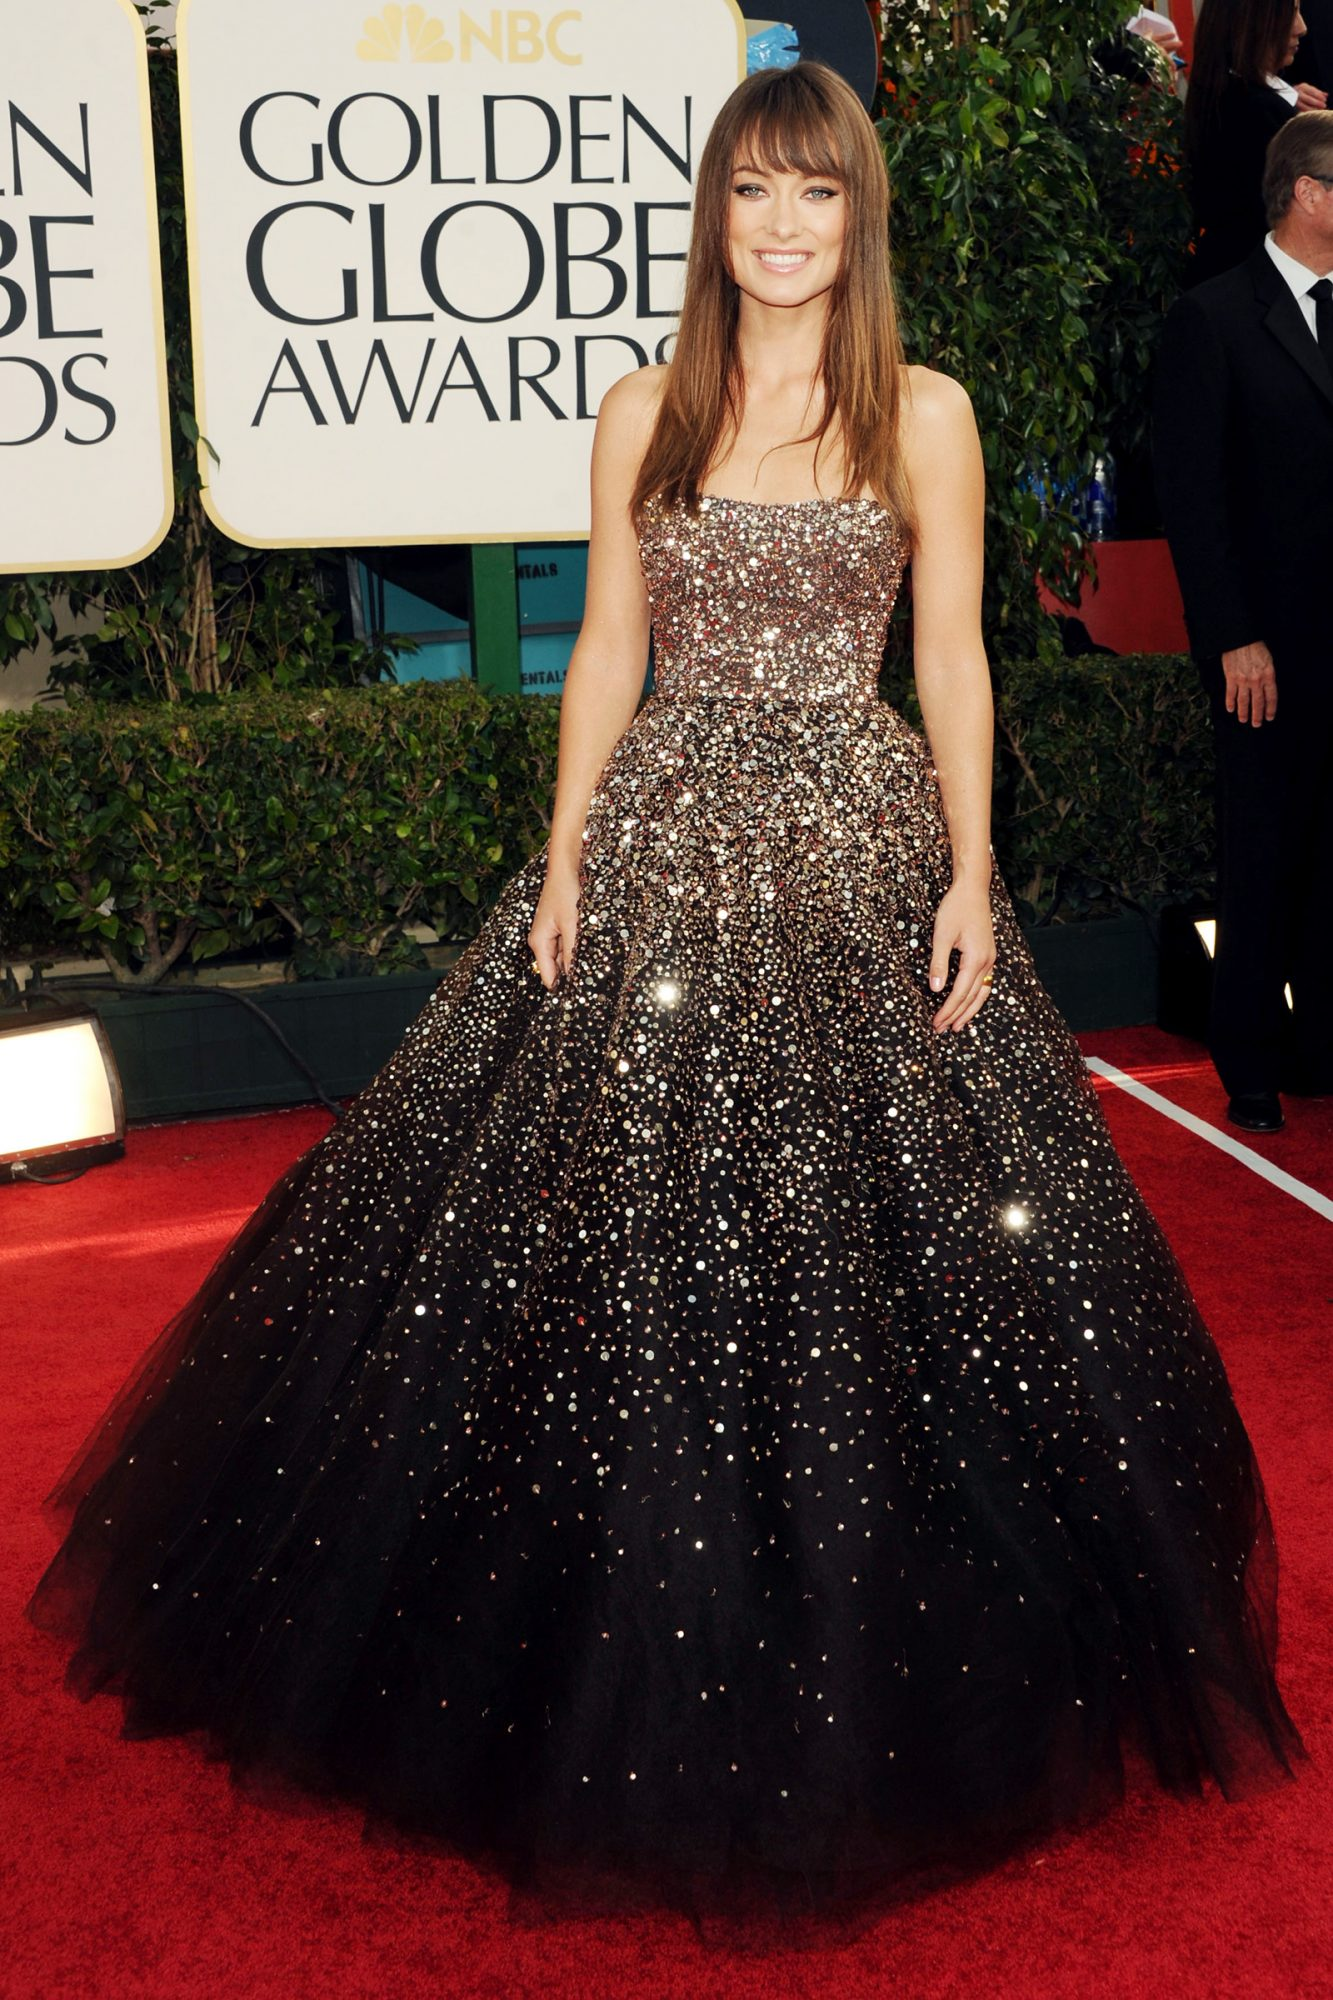 Olivia Wilde arrives at the 68th Annual Golden Globe Awards held at The Beverly Hilton hotel on January 16, 2011